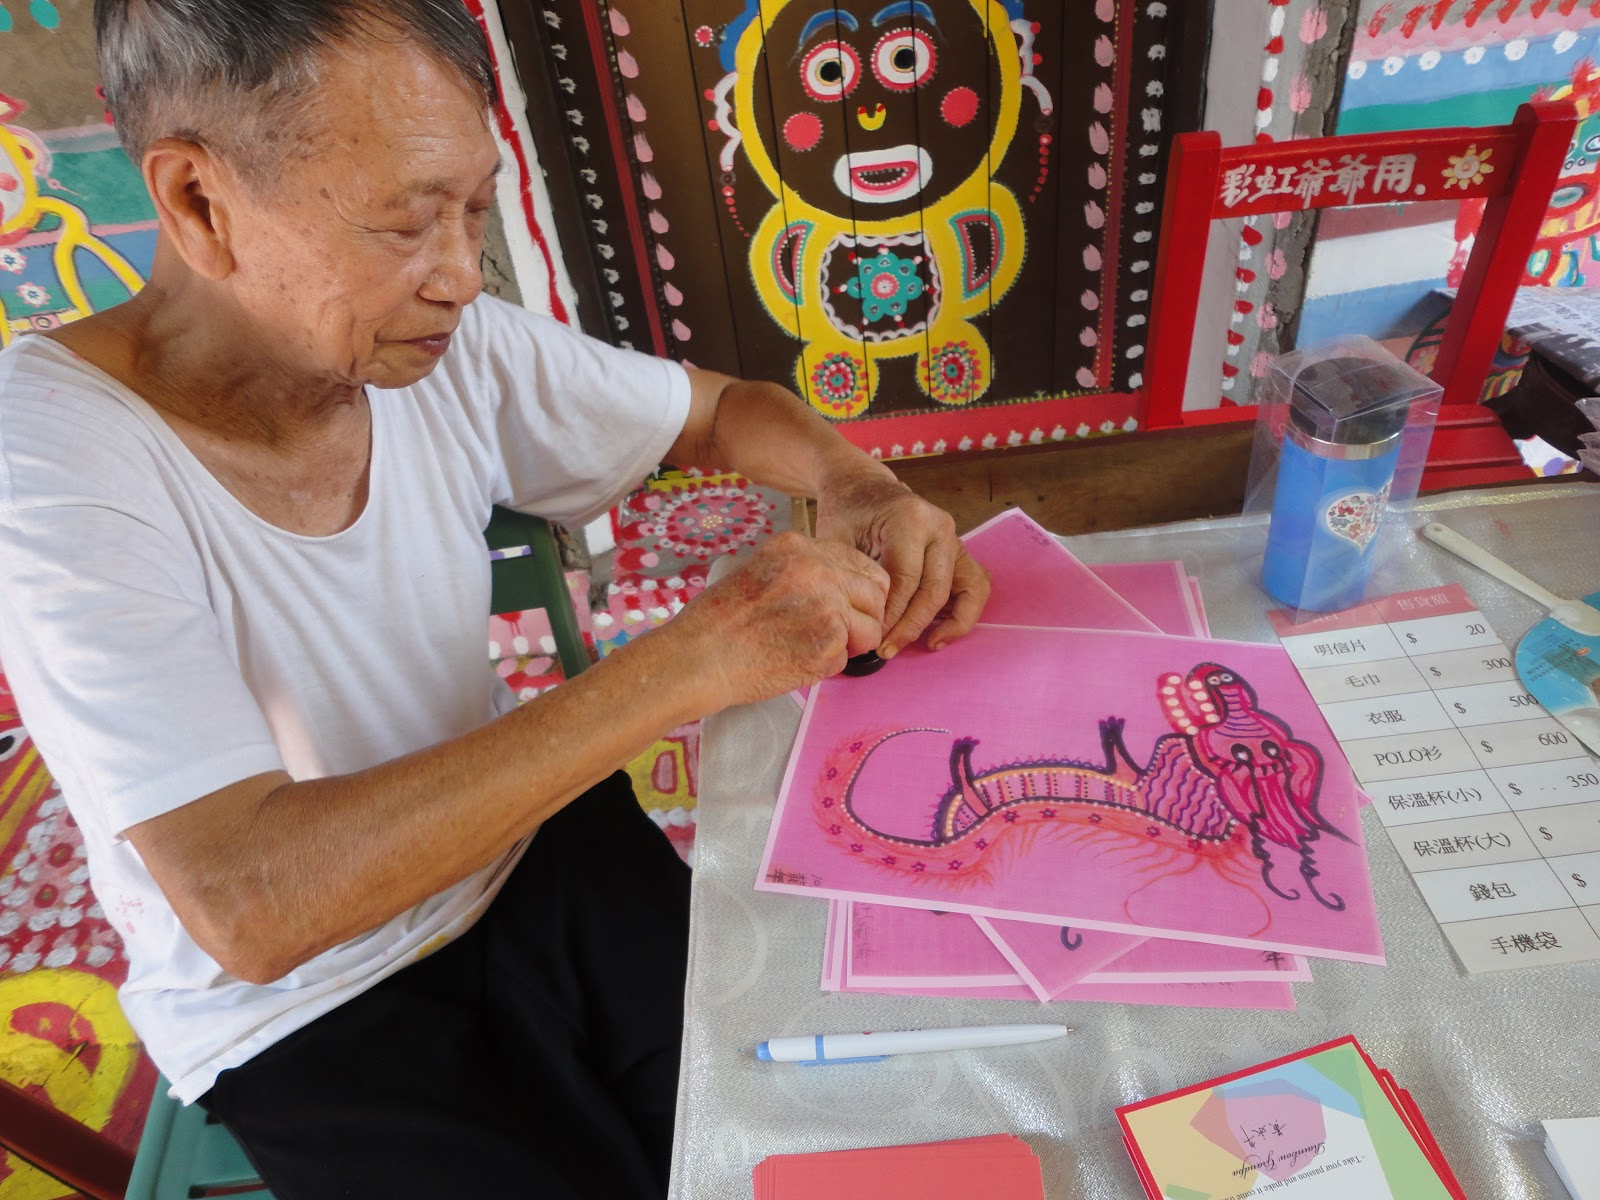 Meet The Rainbow Grandpa That Saved An Entire Village With His Artistic Talent